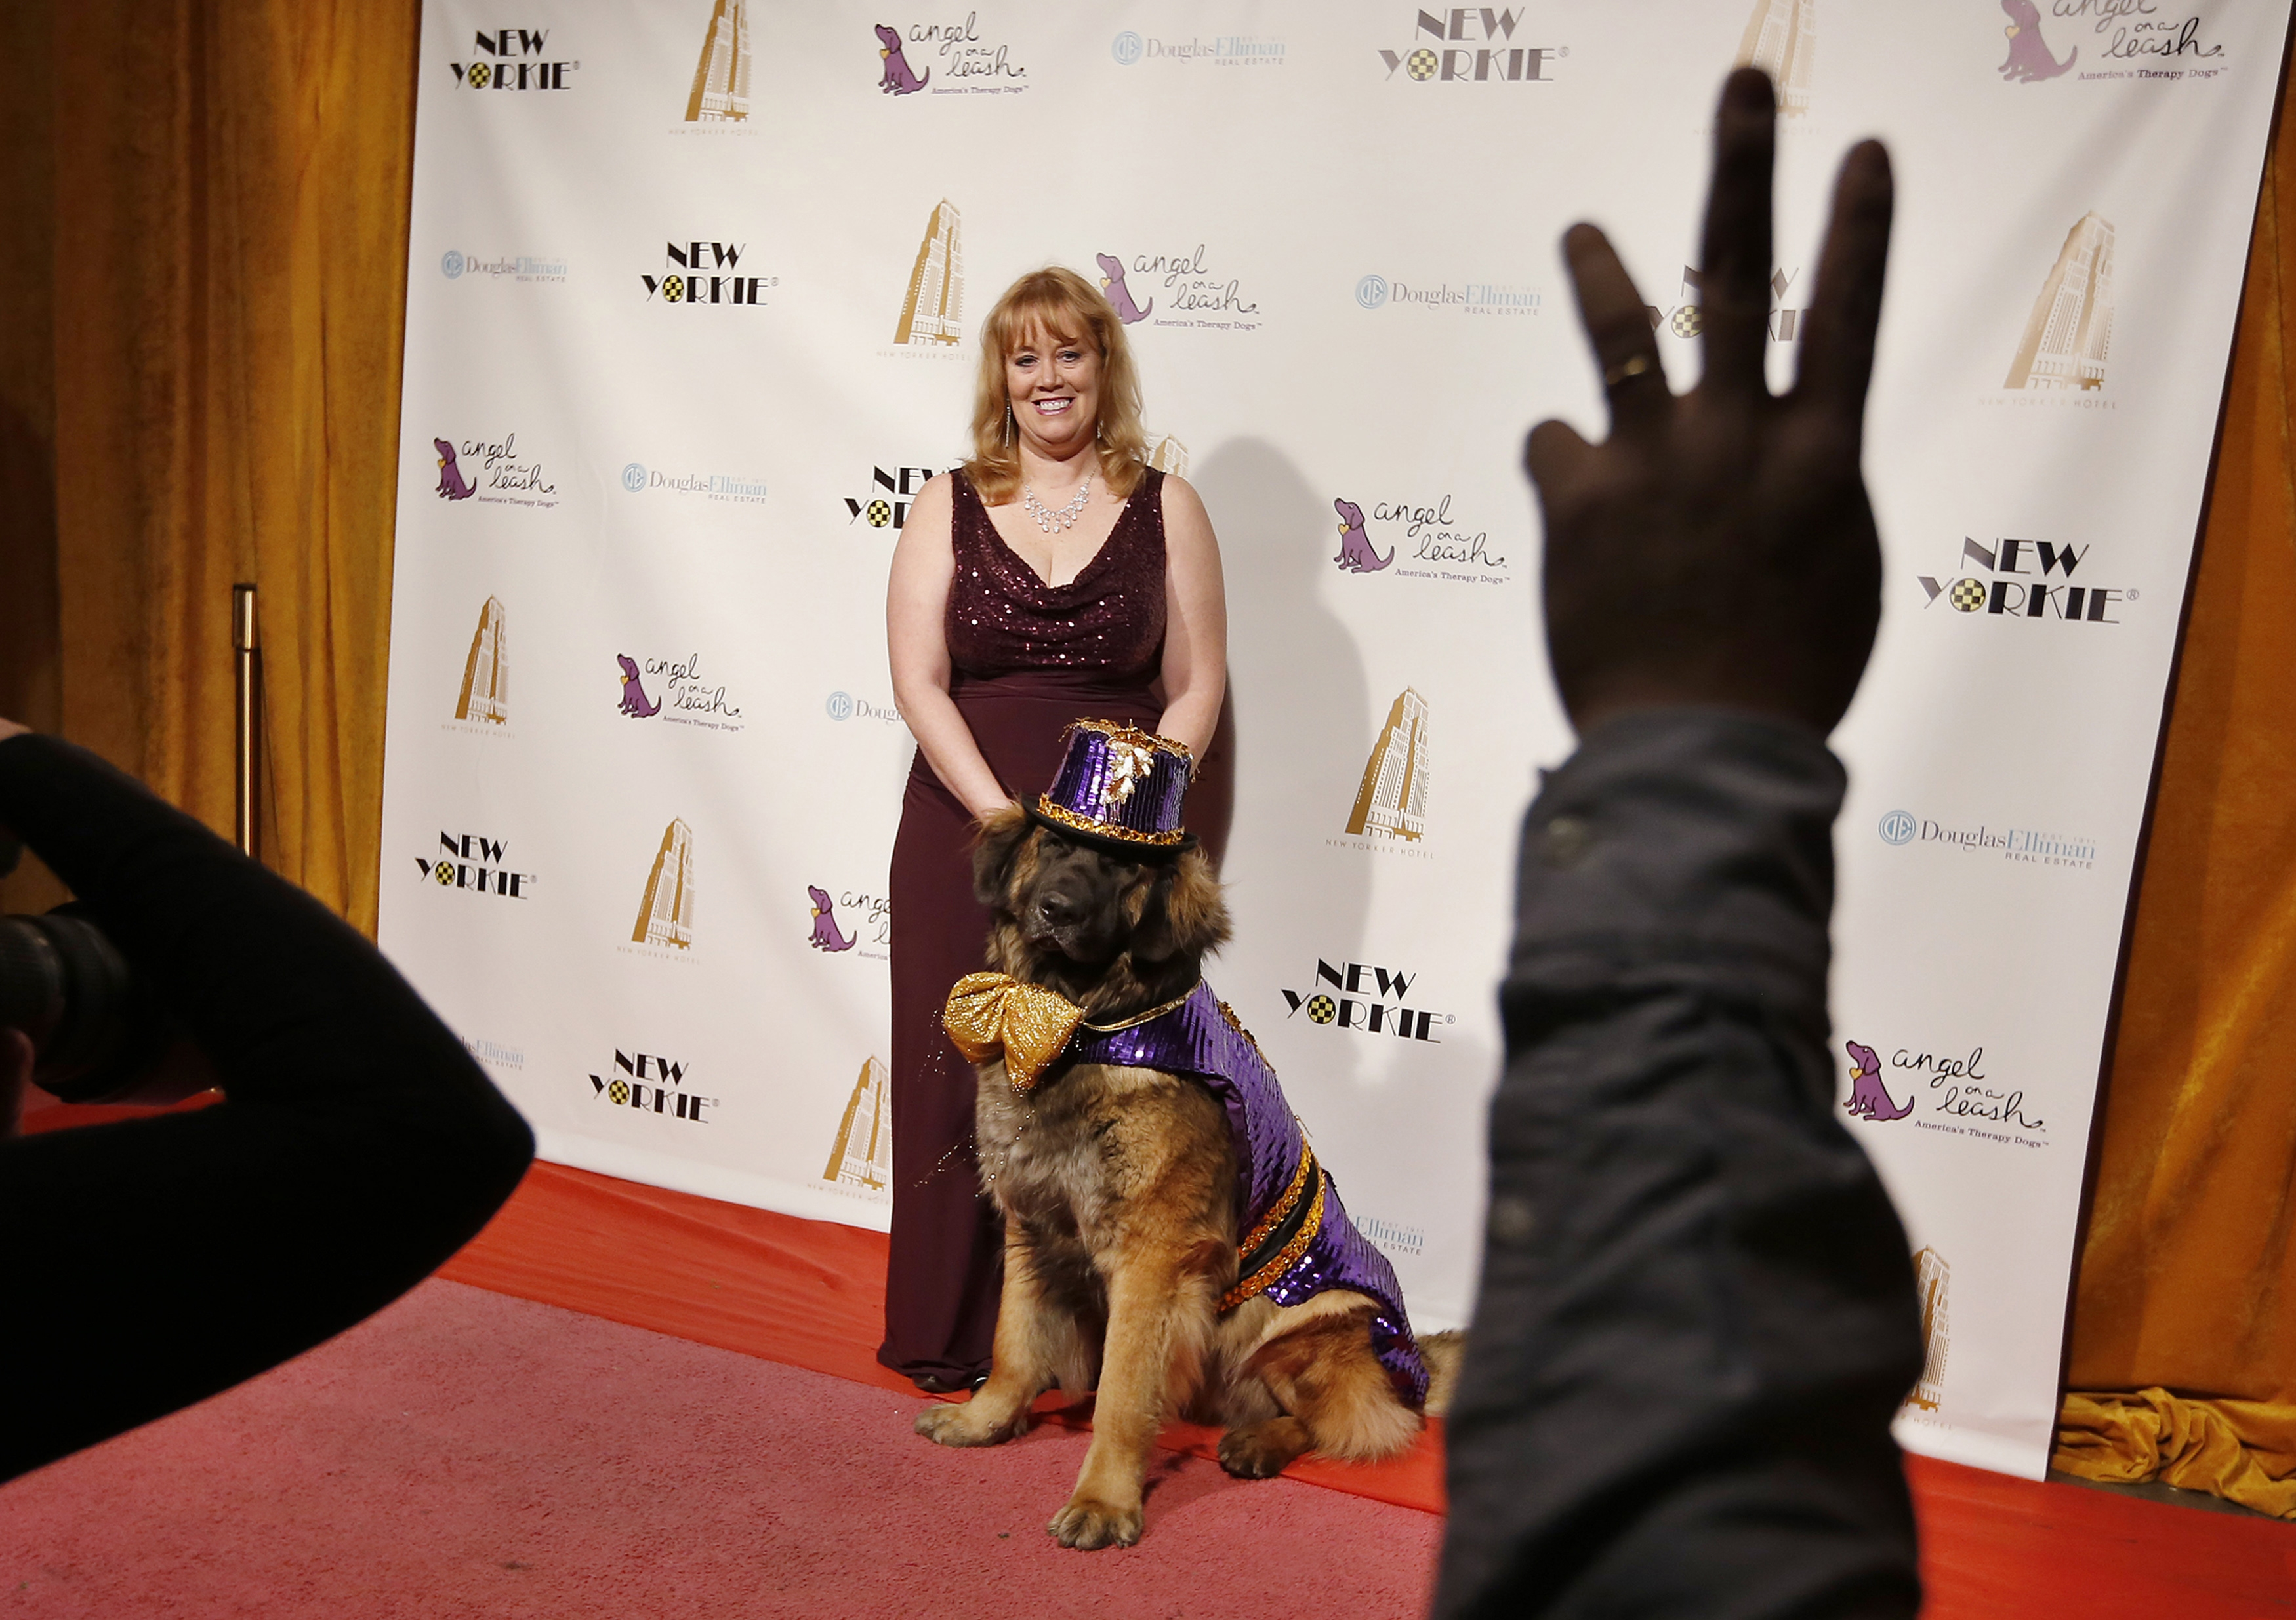 Morgan Avila stands with her dog Mr. America on the red carpet before the start of the New Yorkie Runway Doggie Fashion Show. ? Reuters Photo